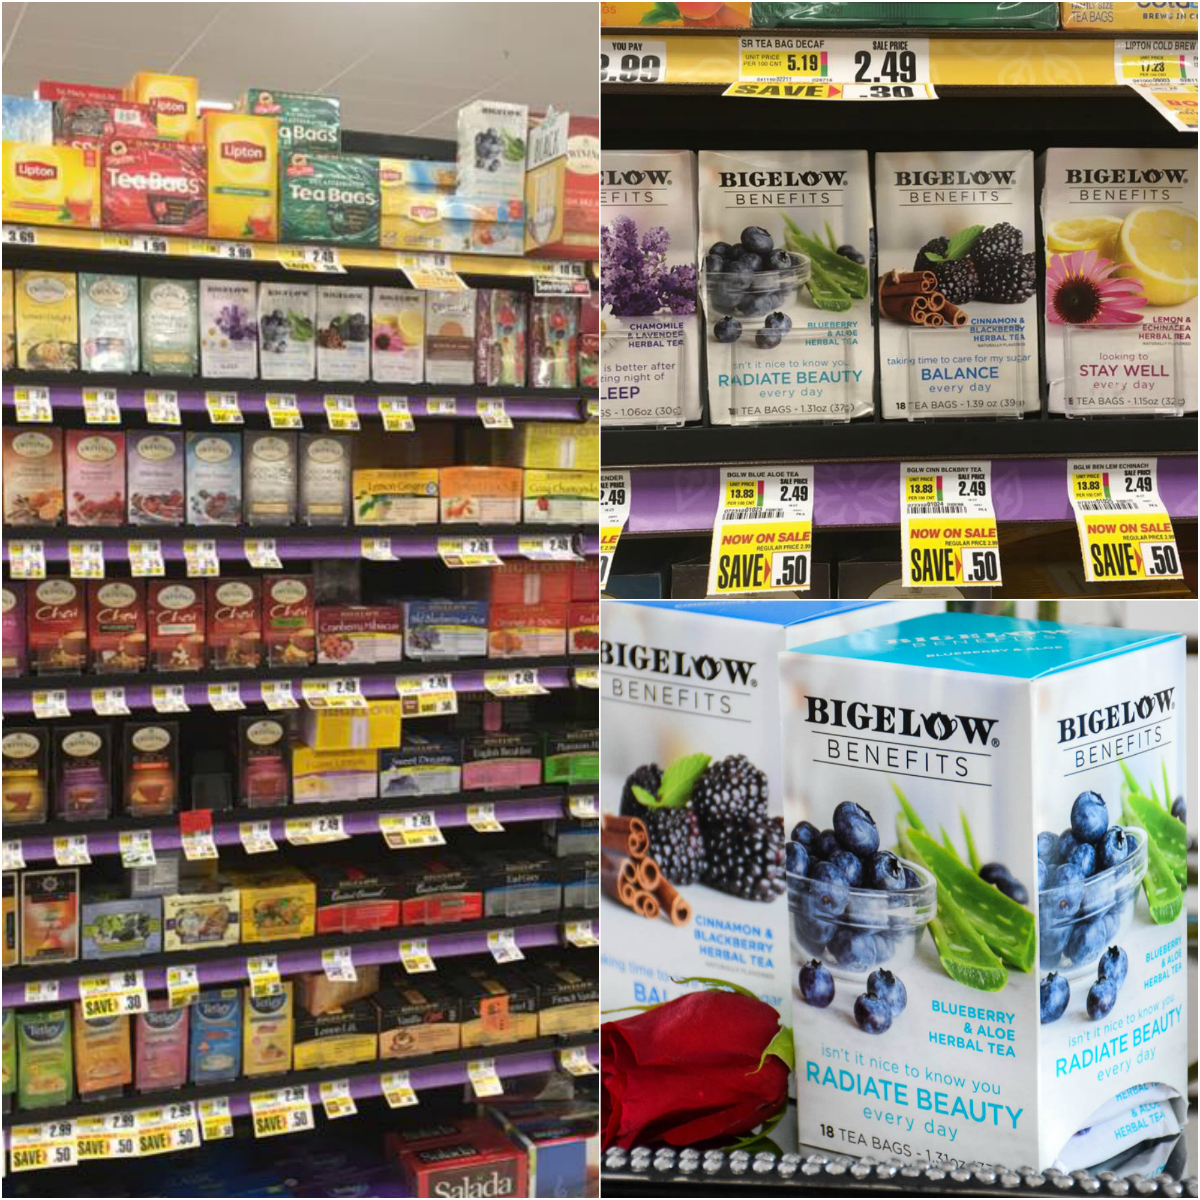 Bigelow herbal tea - Bigelow Benefits Offers 6 Herbal And 1 Green Tea And I Found My Teas While Shopping At My Local Shoprite